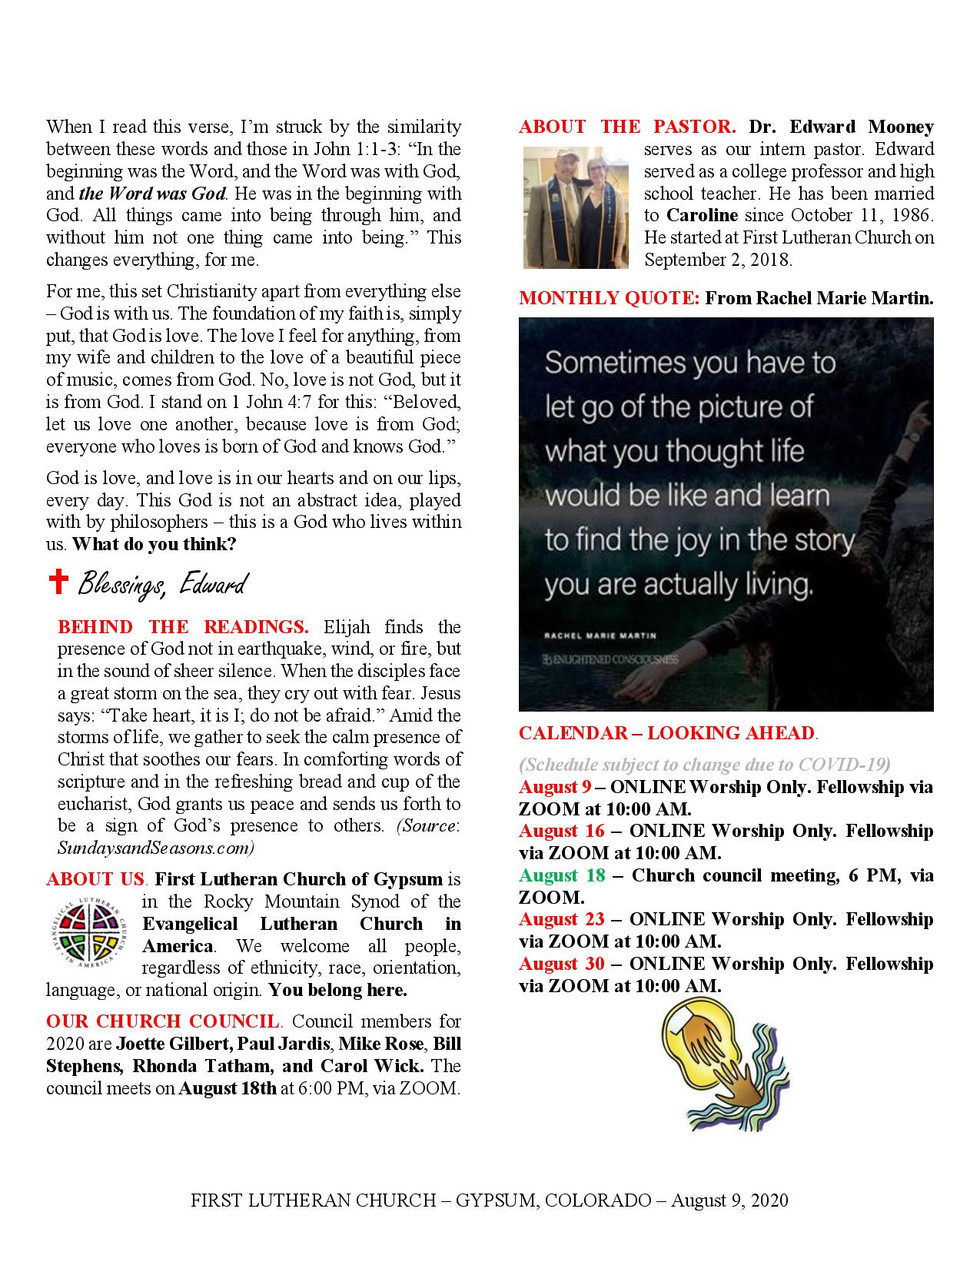 Newsletter, August 9, 2020, page 2